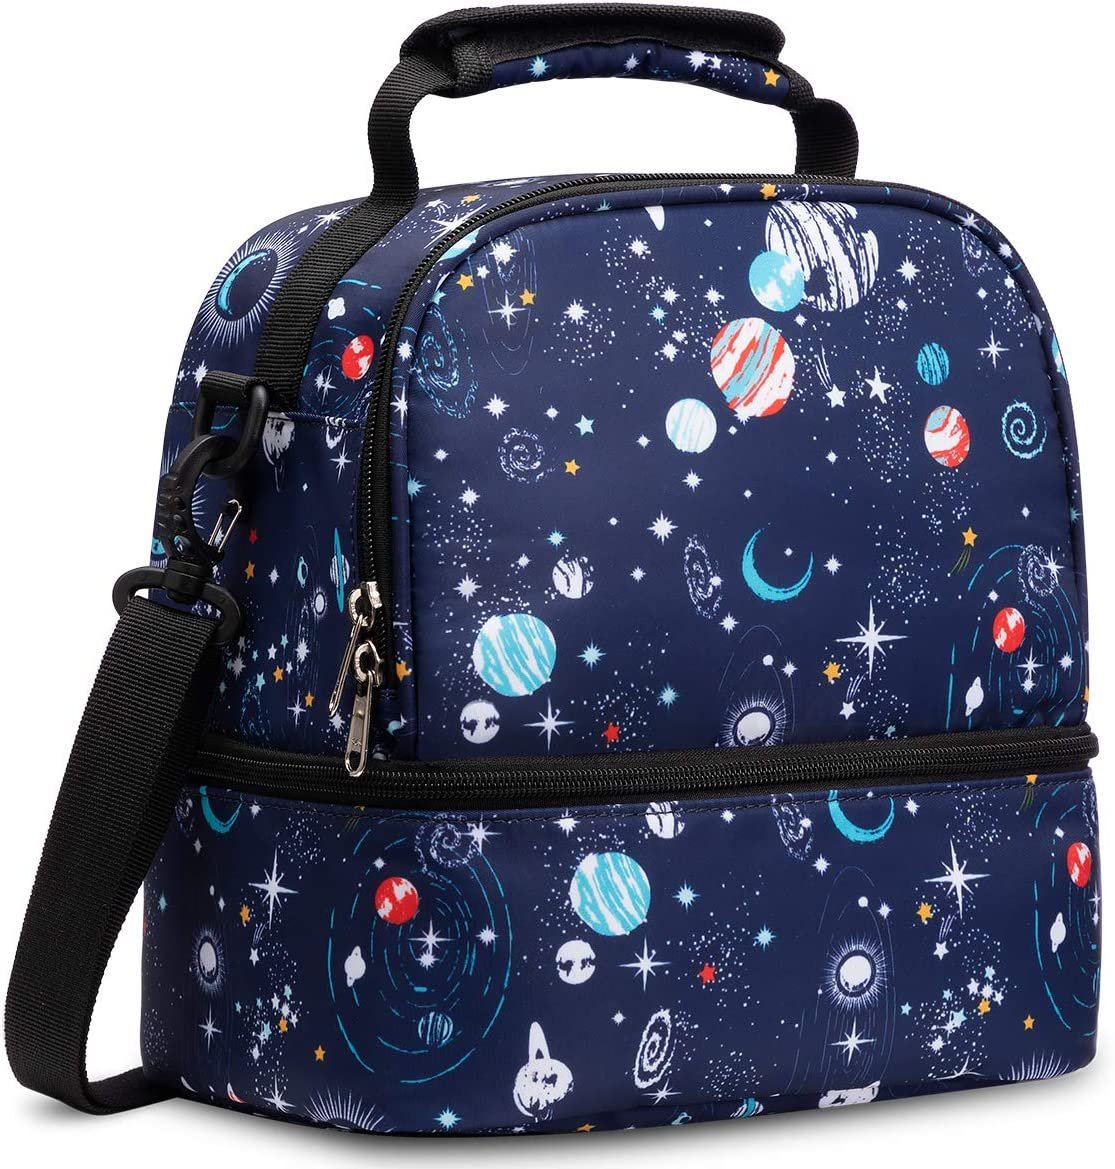 Amazon coupon code for Insulated Lunch Bag for Students